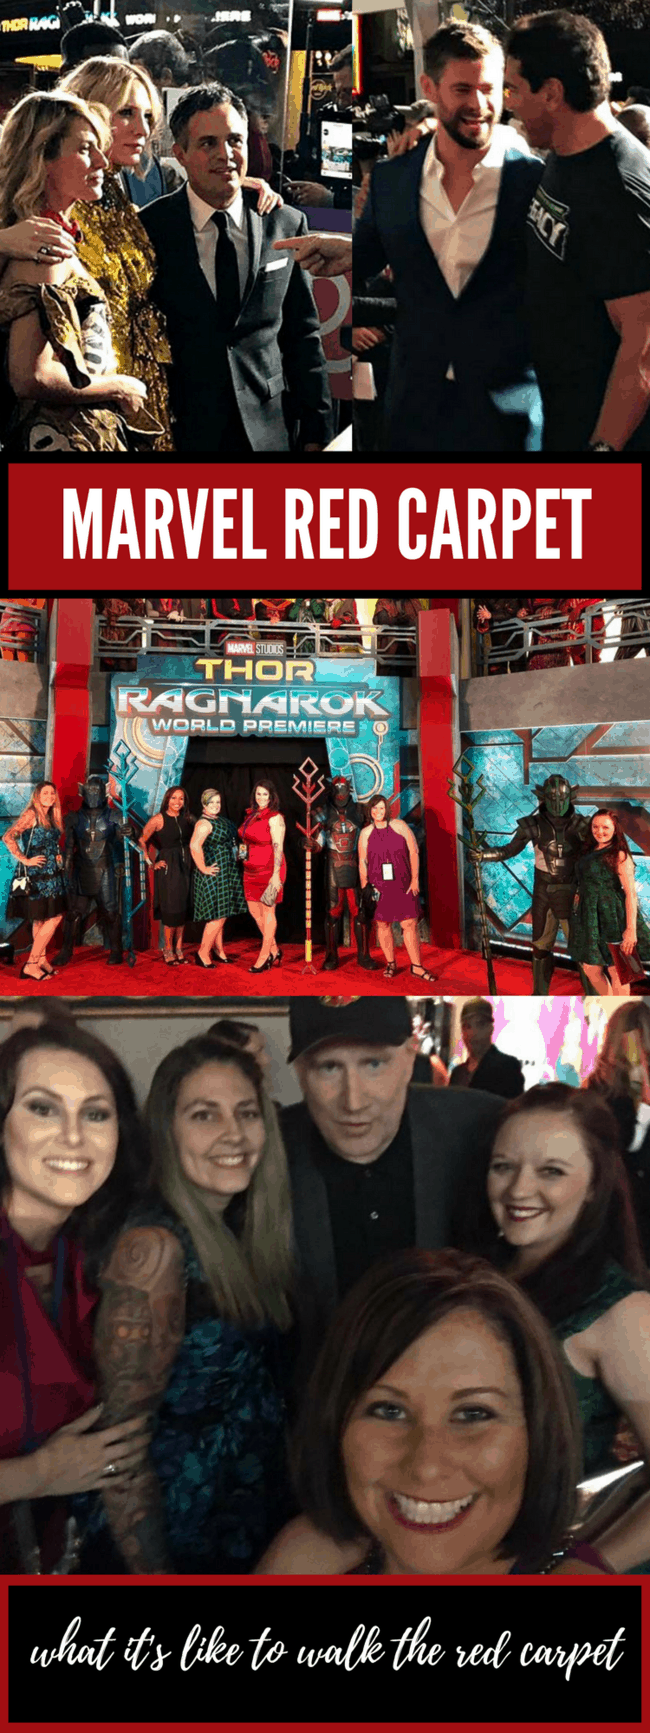 How to walk the red carpet at a Marvel premiere! Thor: Ragnarok Red Carpet Premiere Experience: what happens when a Hollywood newbie finds herself on the Marvel red carpet!